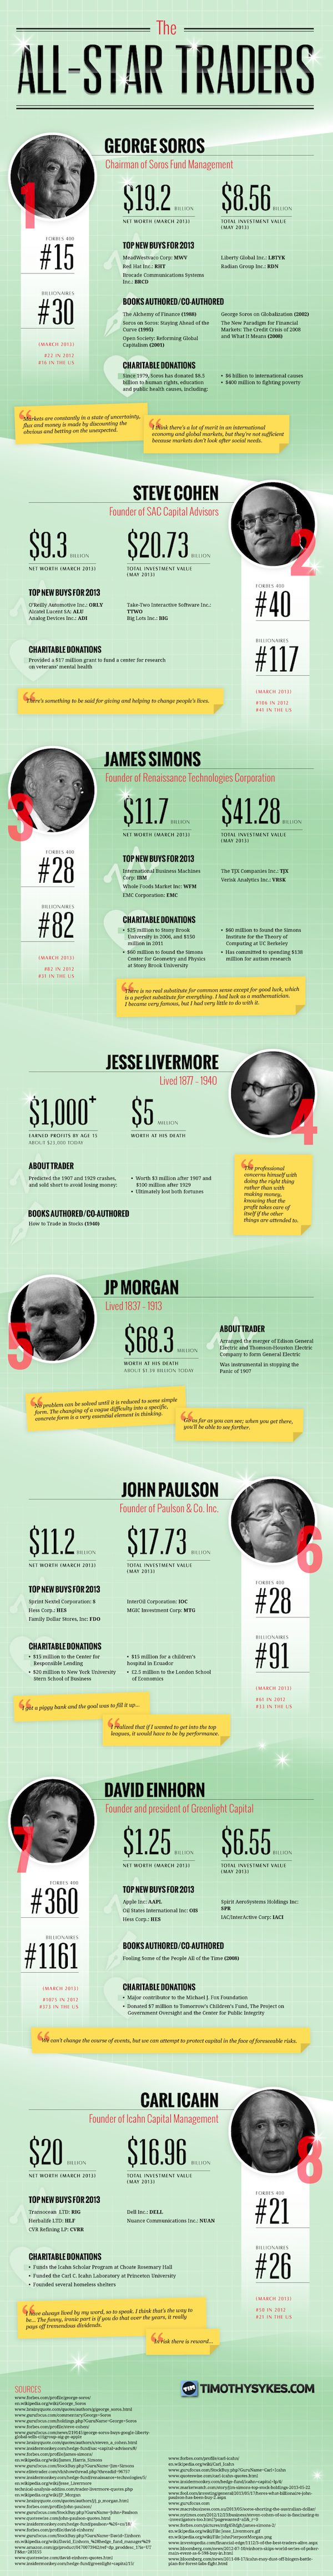 Trading infographic : The All-Star Traders [INFOGRAPHIC]